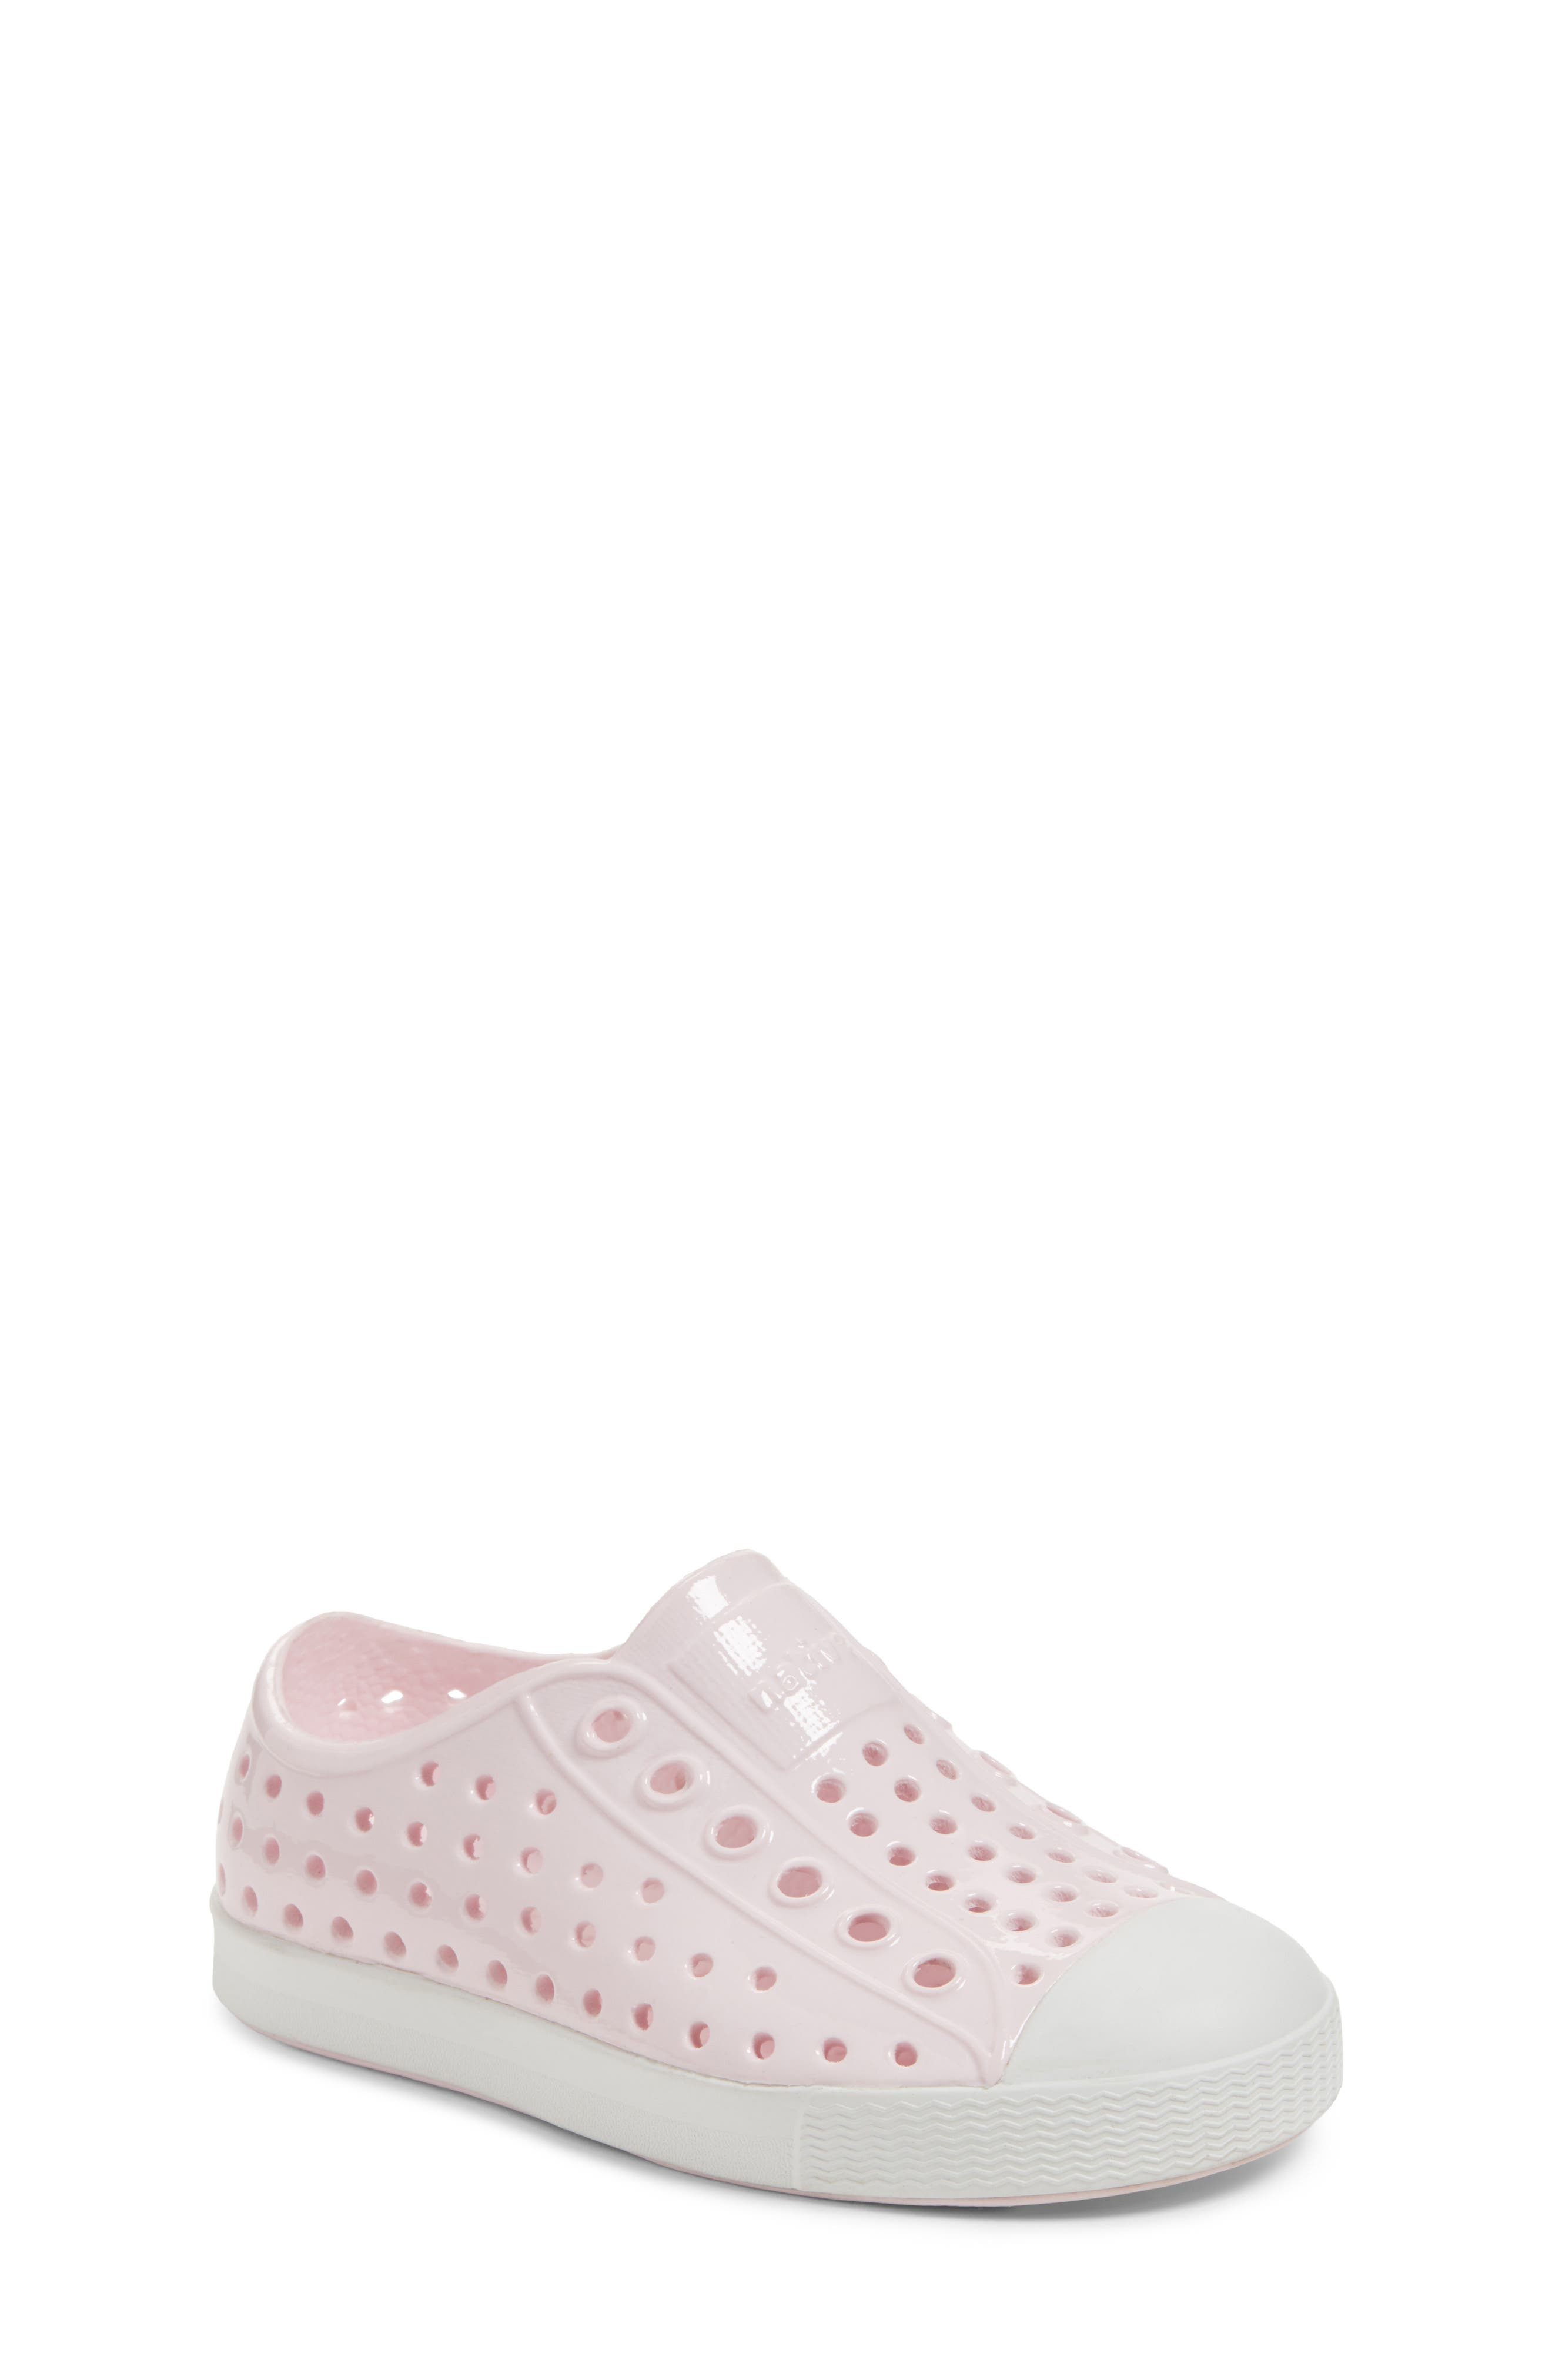 Main Image - Native Shoes Jefferson Glossy Slip-On Sneaker (Baby, Walker, Toddler & Little Kid)